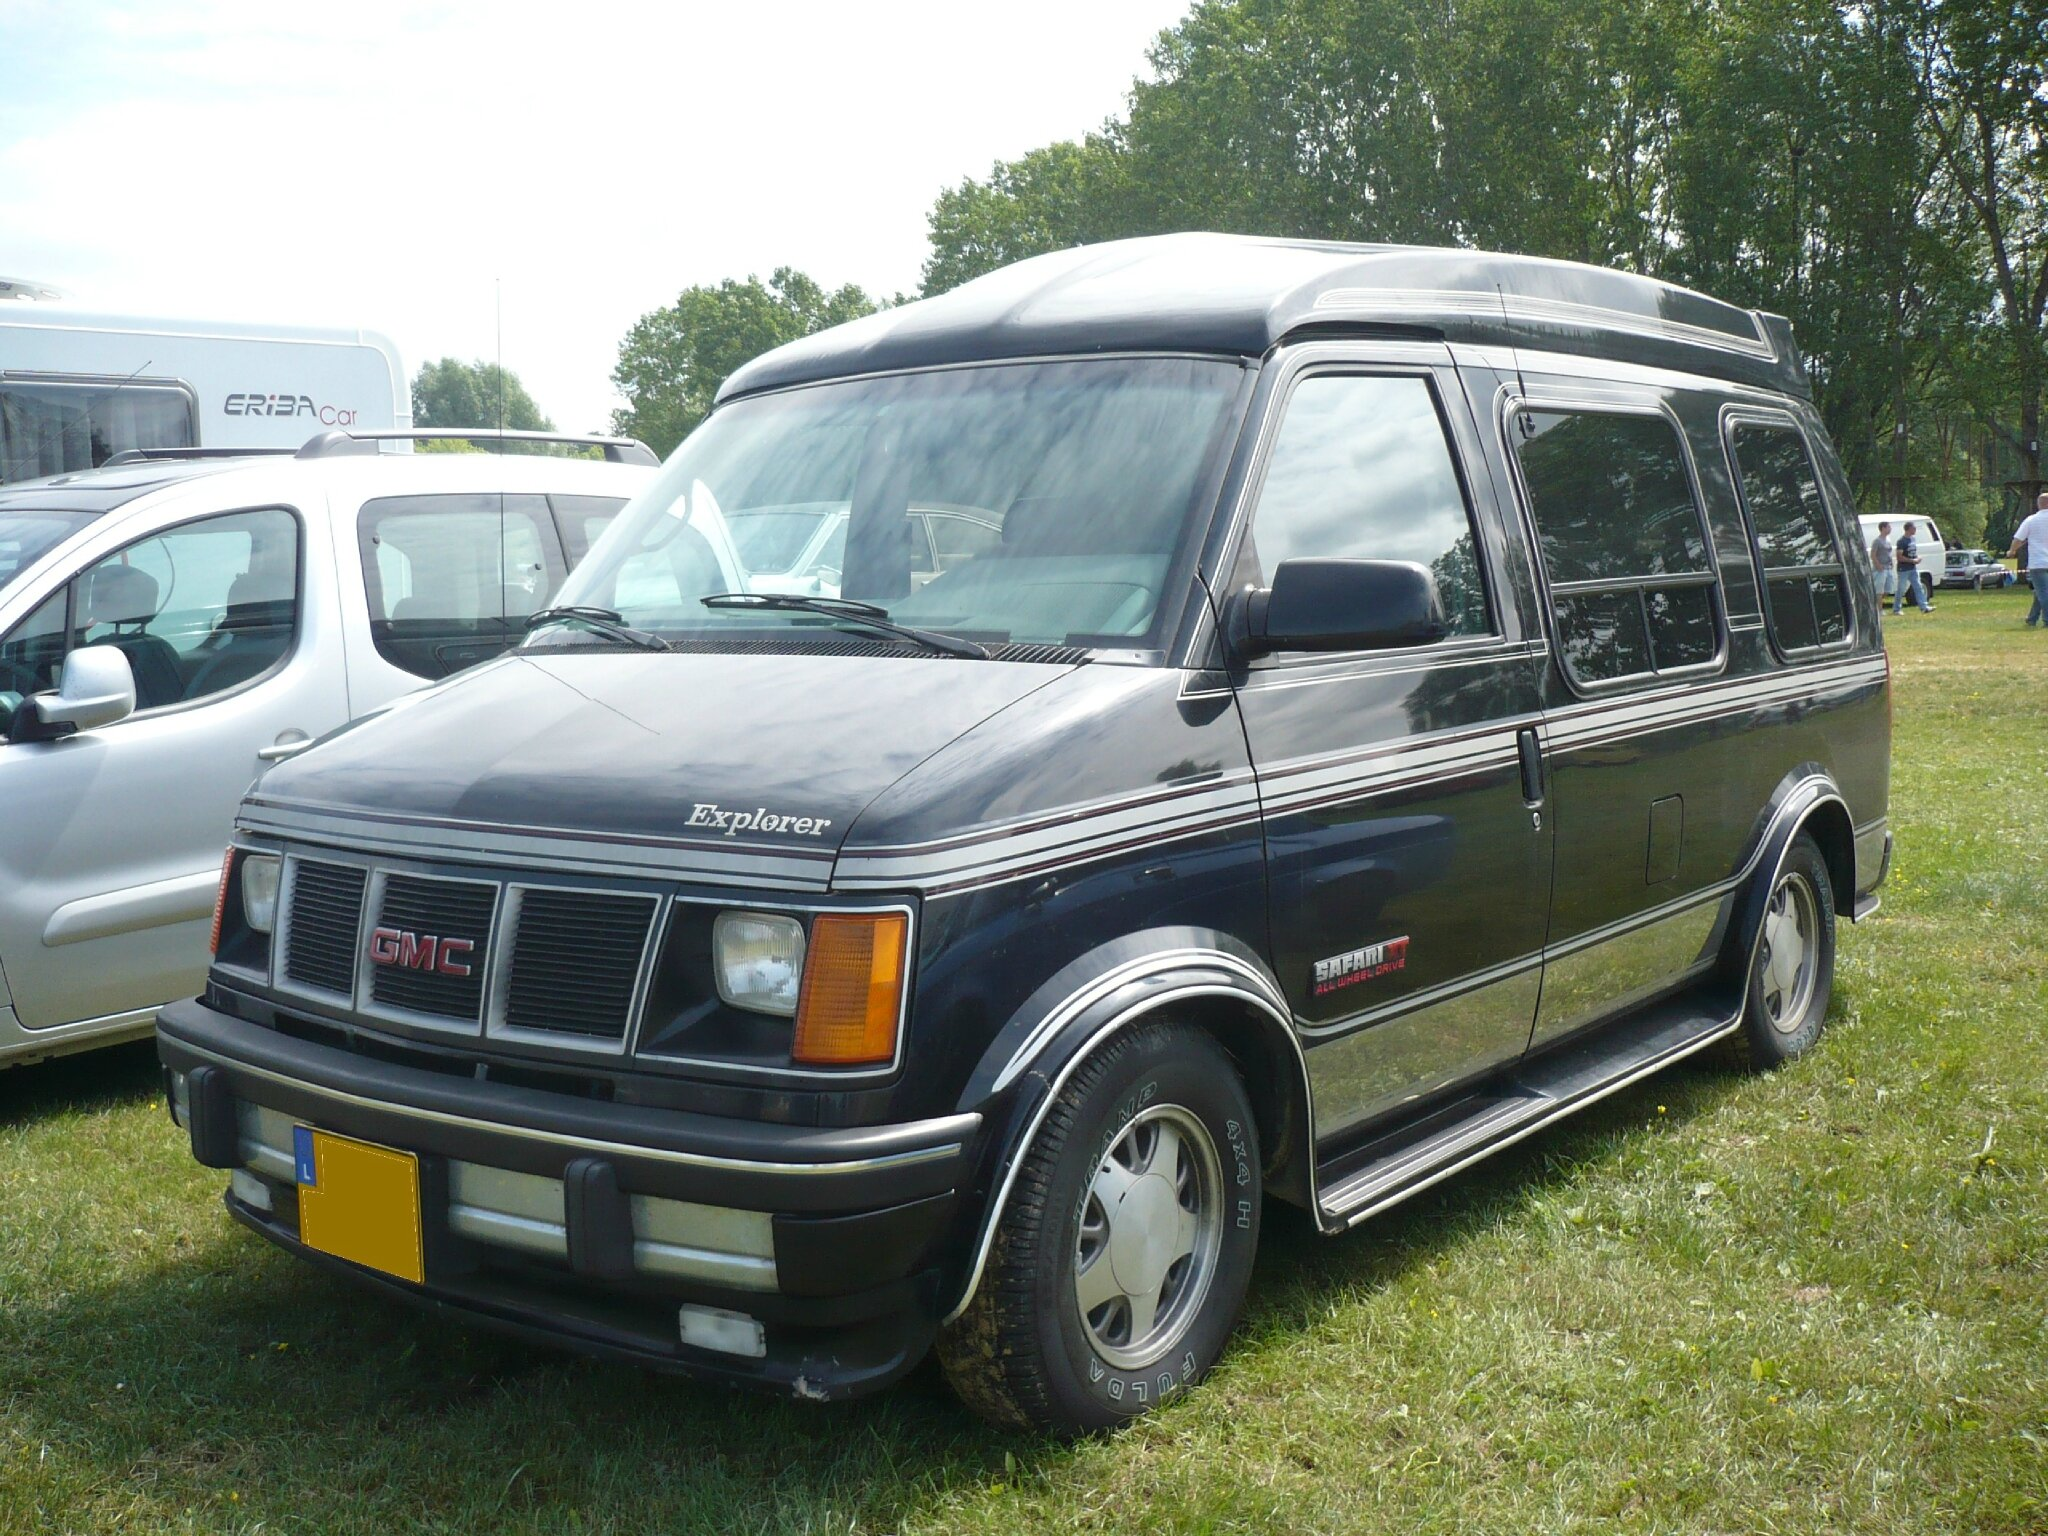 GMC Explorer Safari XT Madine (1)